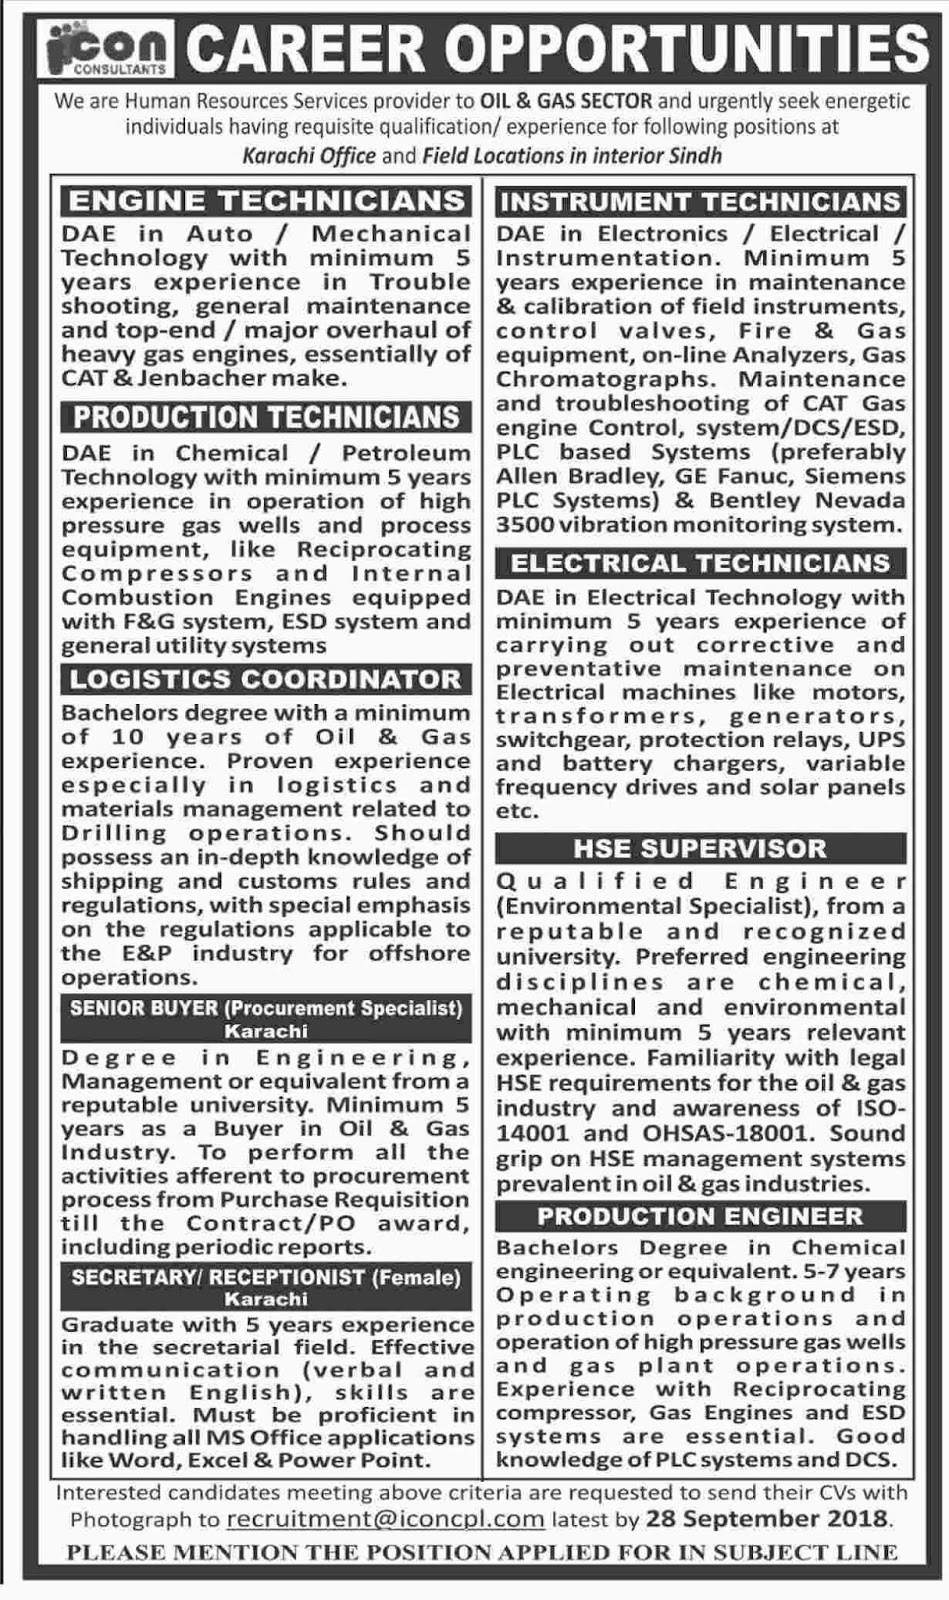 Latest Oil and Gas Sector Karachi , DAE, Bachelor, Master